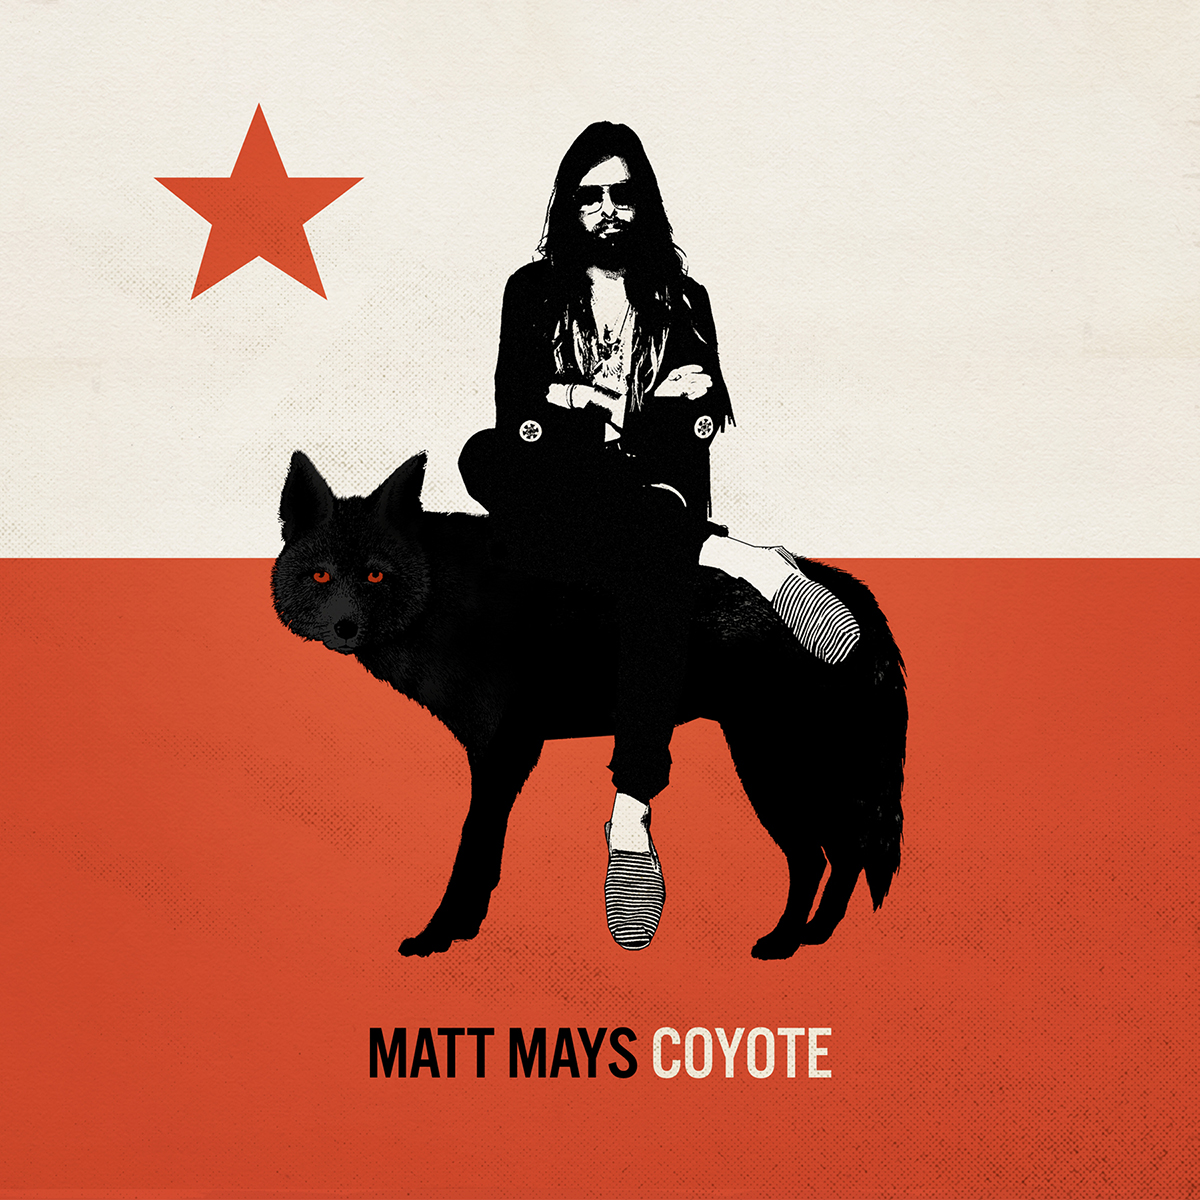 Matt Mays - Coyote 2012